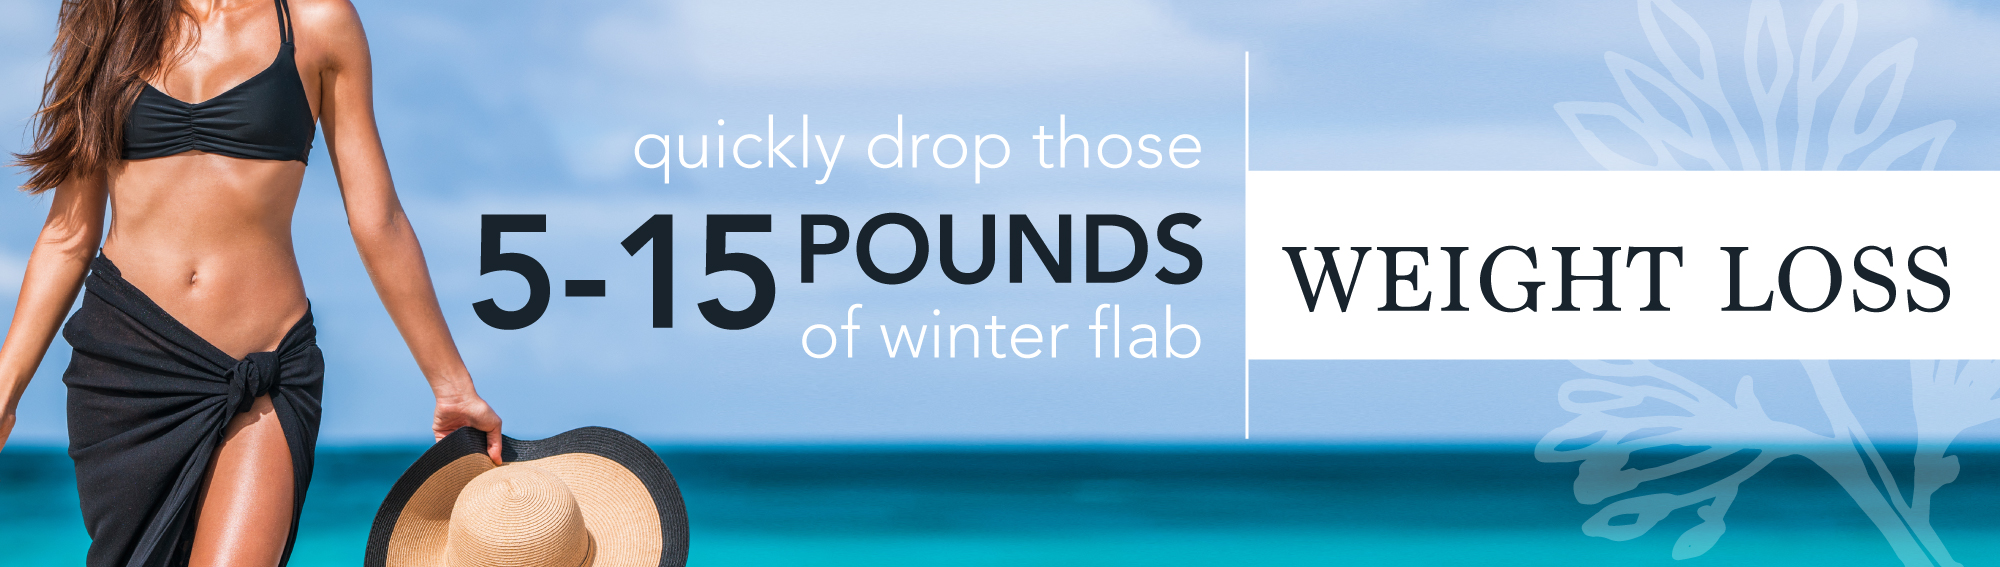 Quickly drop those 5-15 pounds of winter flab